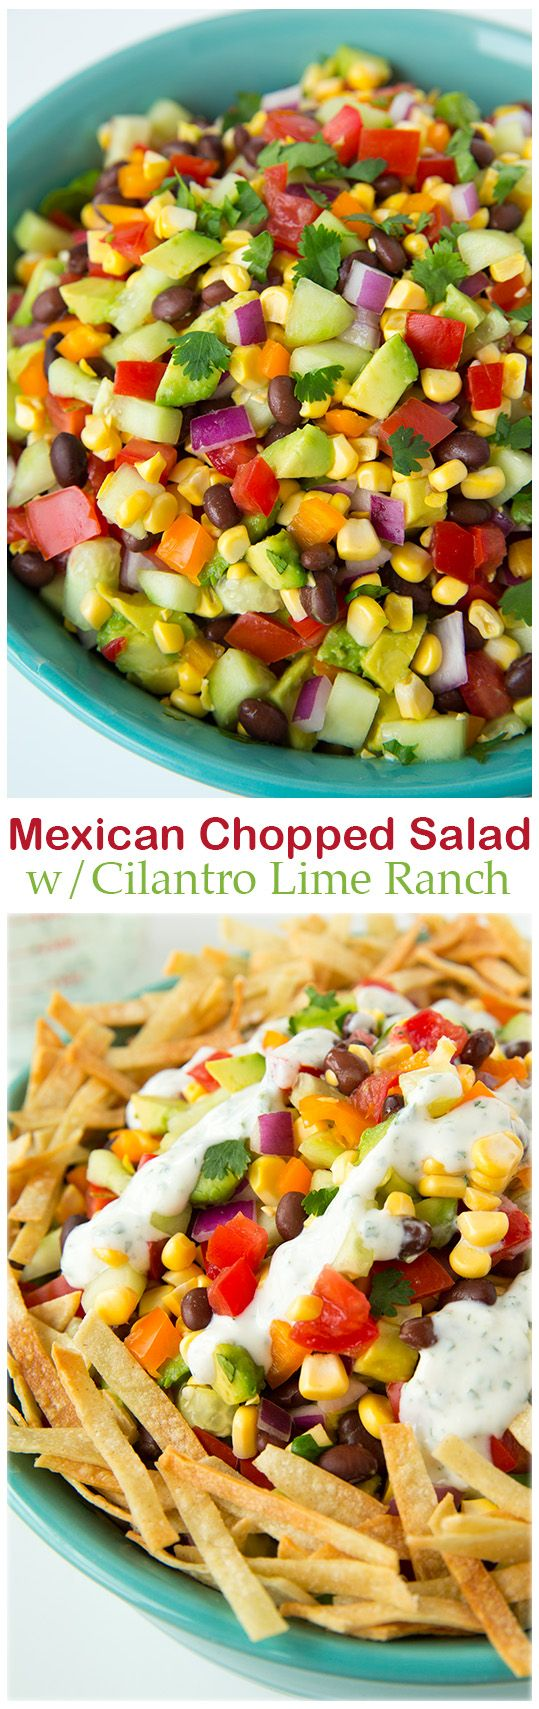 Food and Drink: Mexican Chopped Salad with Greek Yogurt Cilantro L...